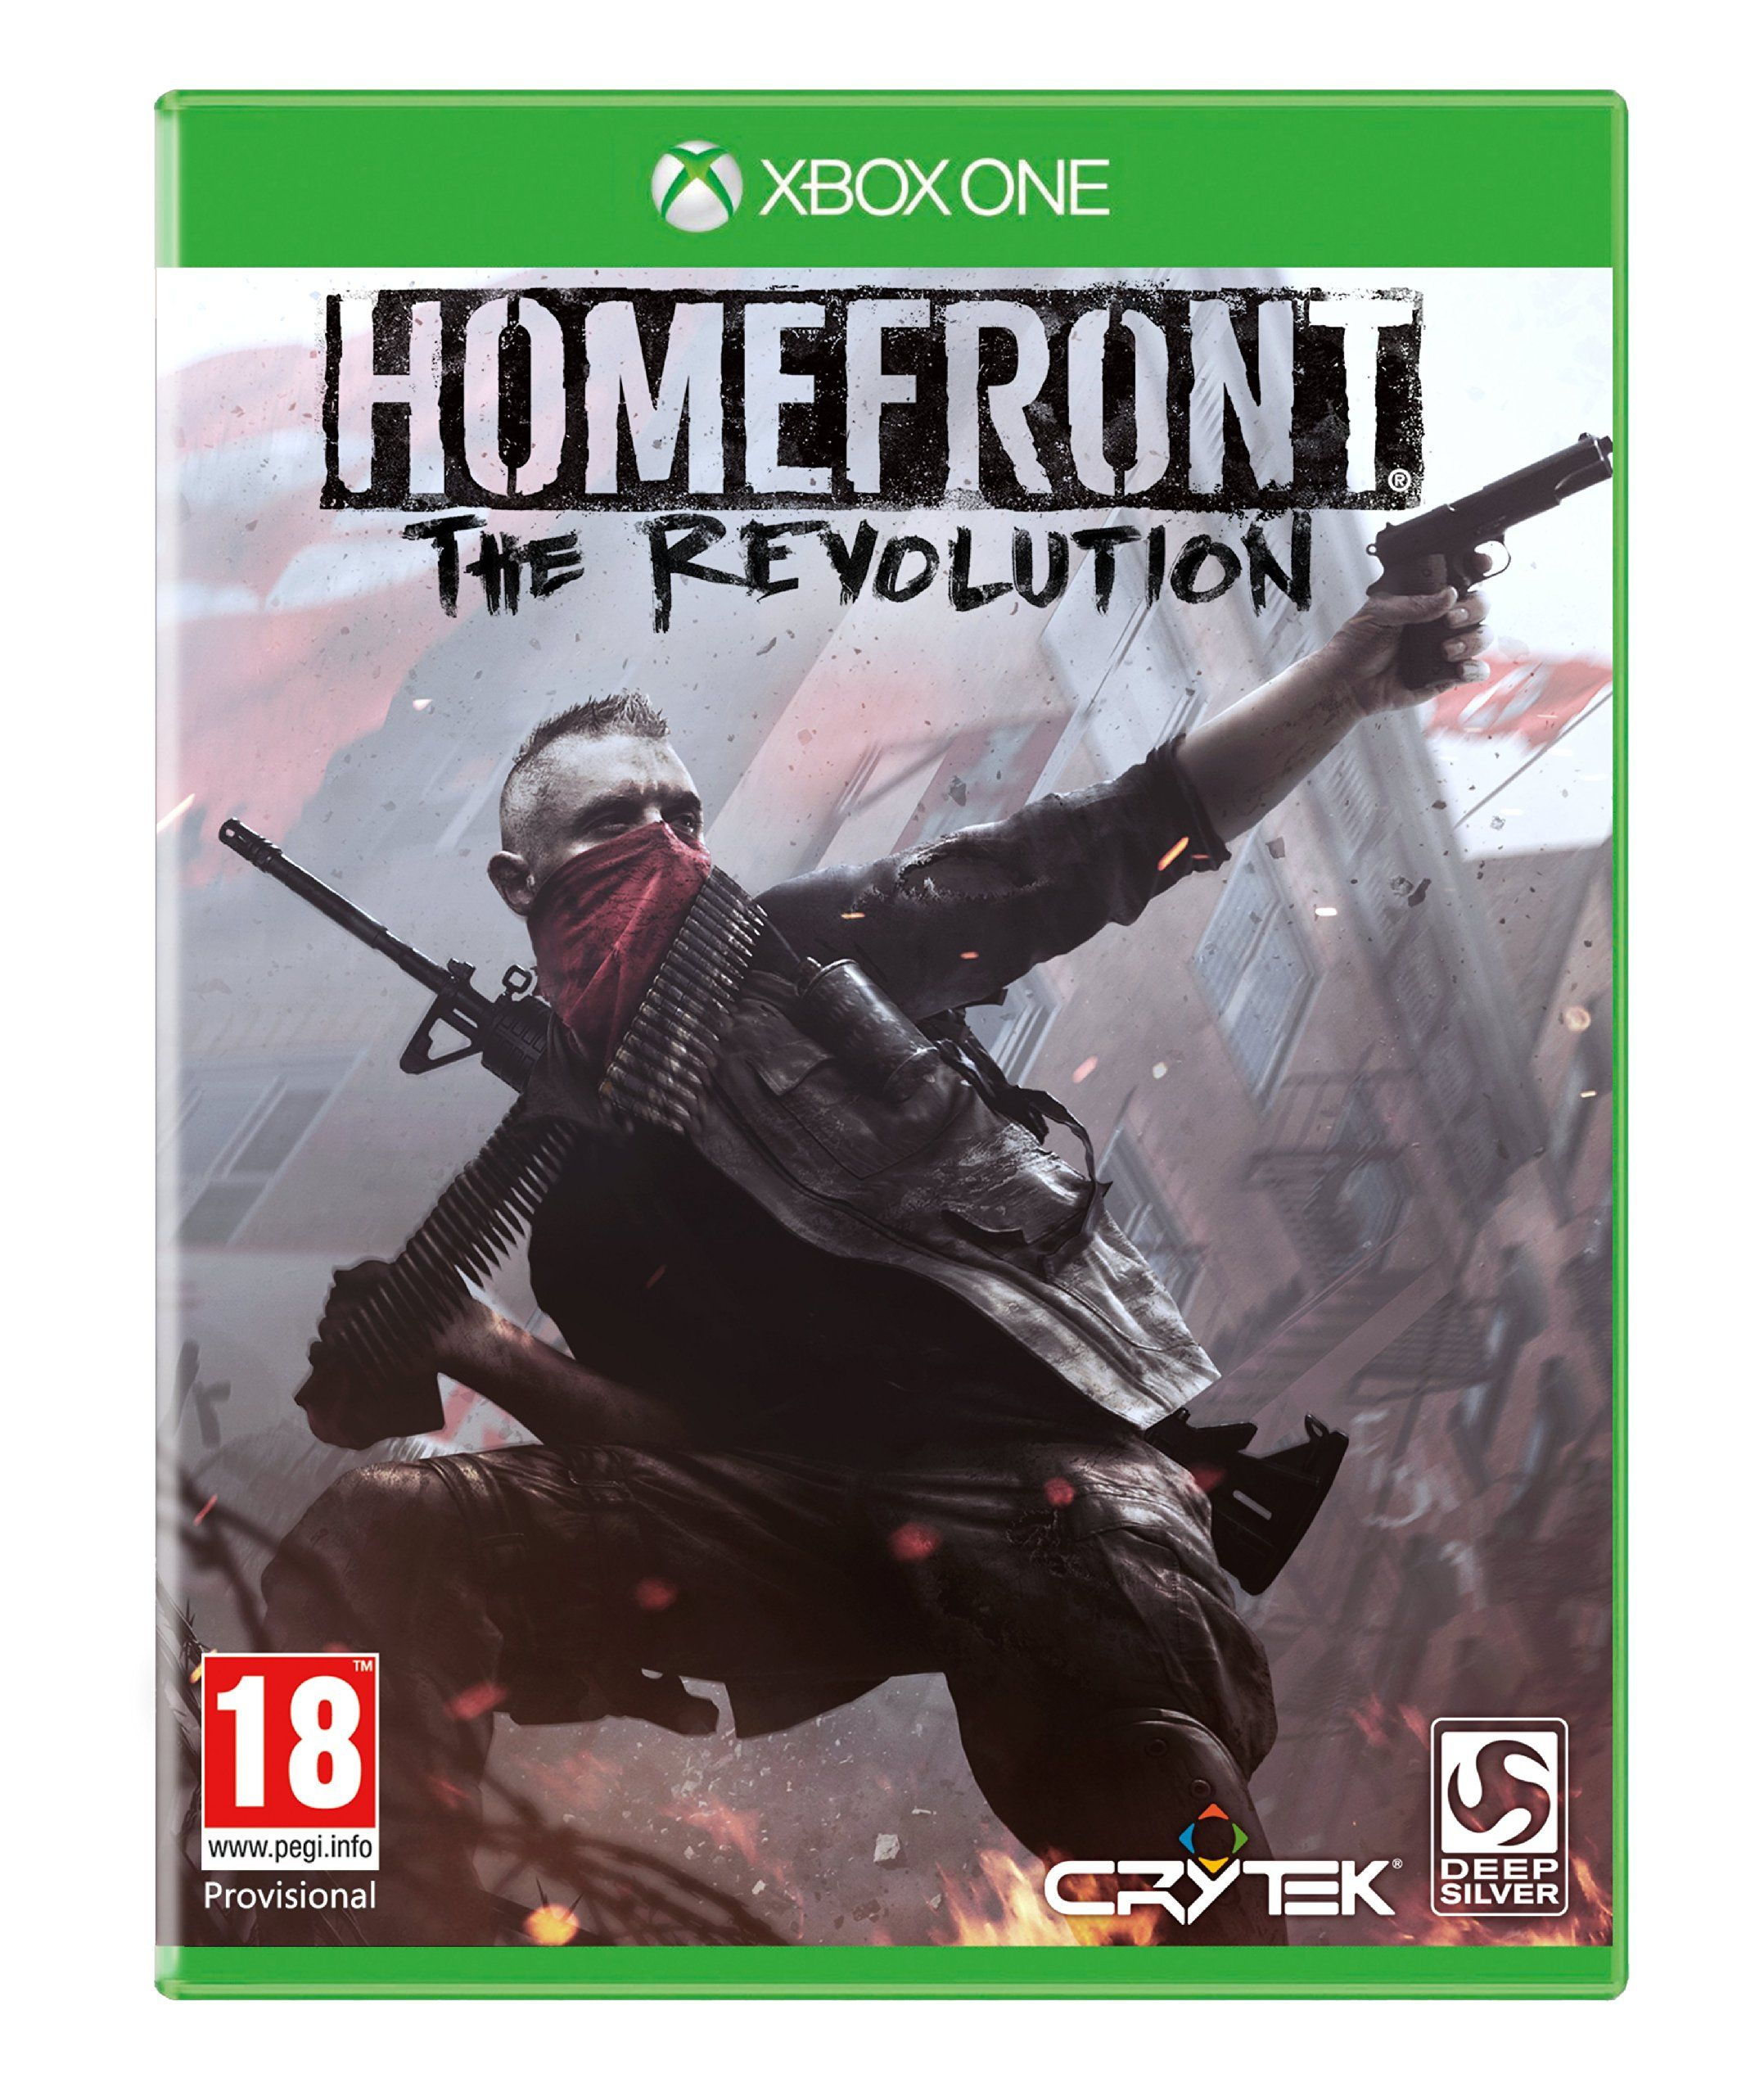 Best Amazon Co Uk Xbox 360 Games Consoles Accessories Image Collection Fuse Home Front The Revolution One Amazoncouk Pc